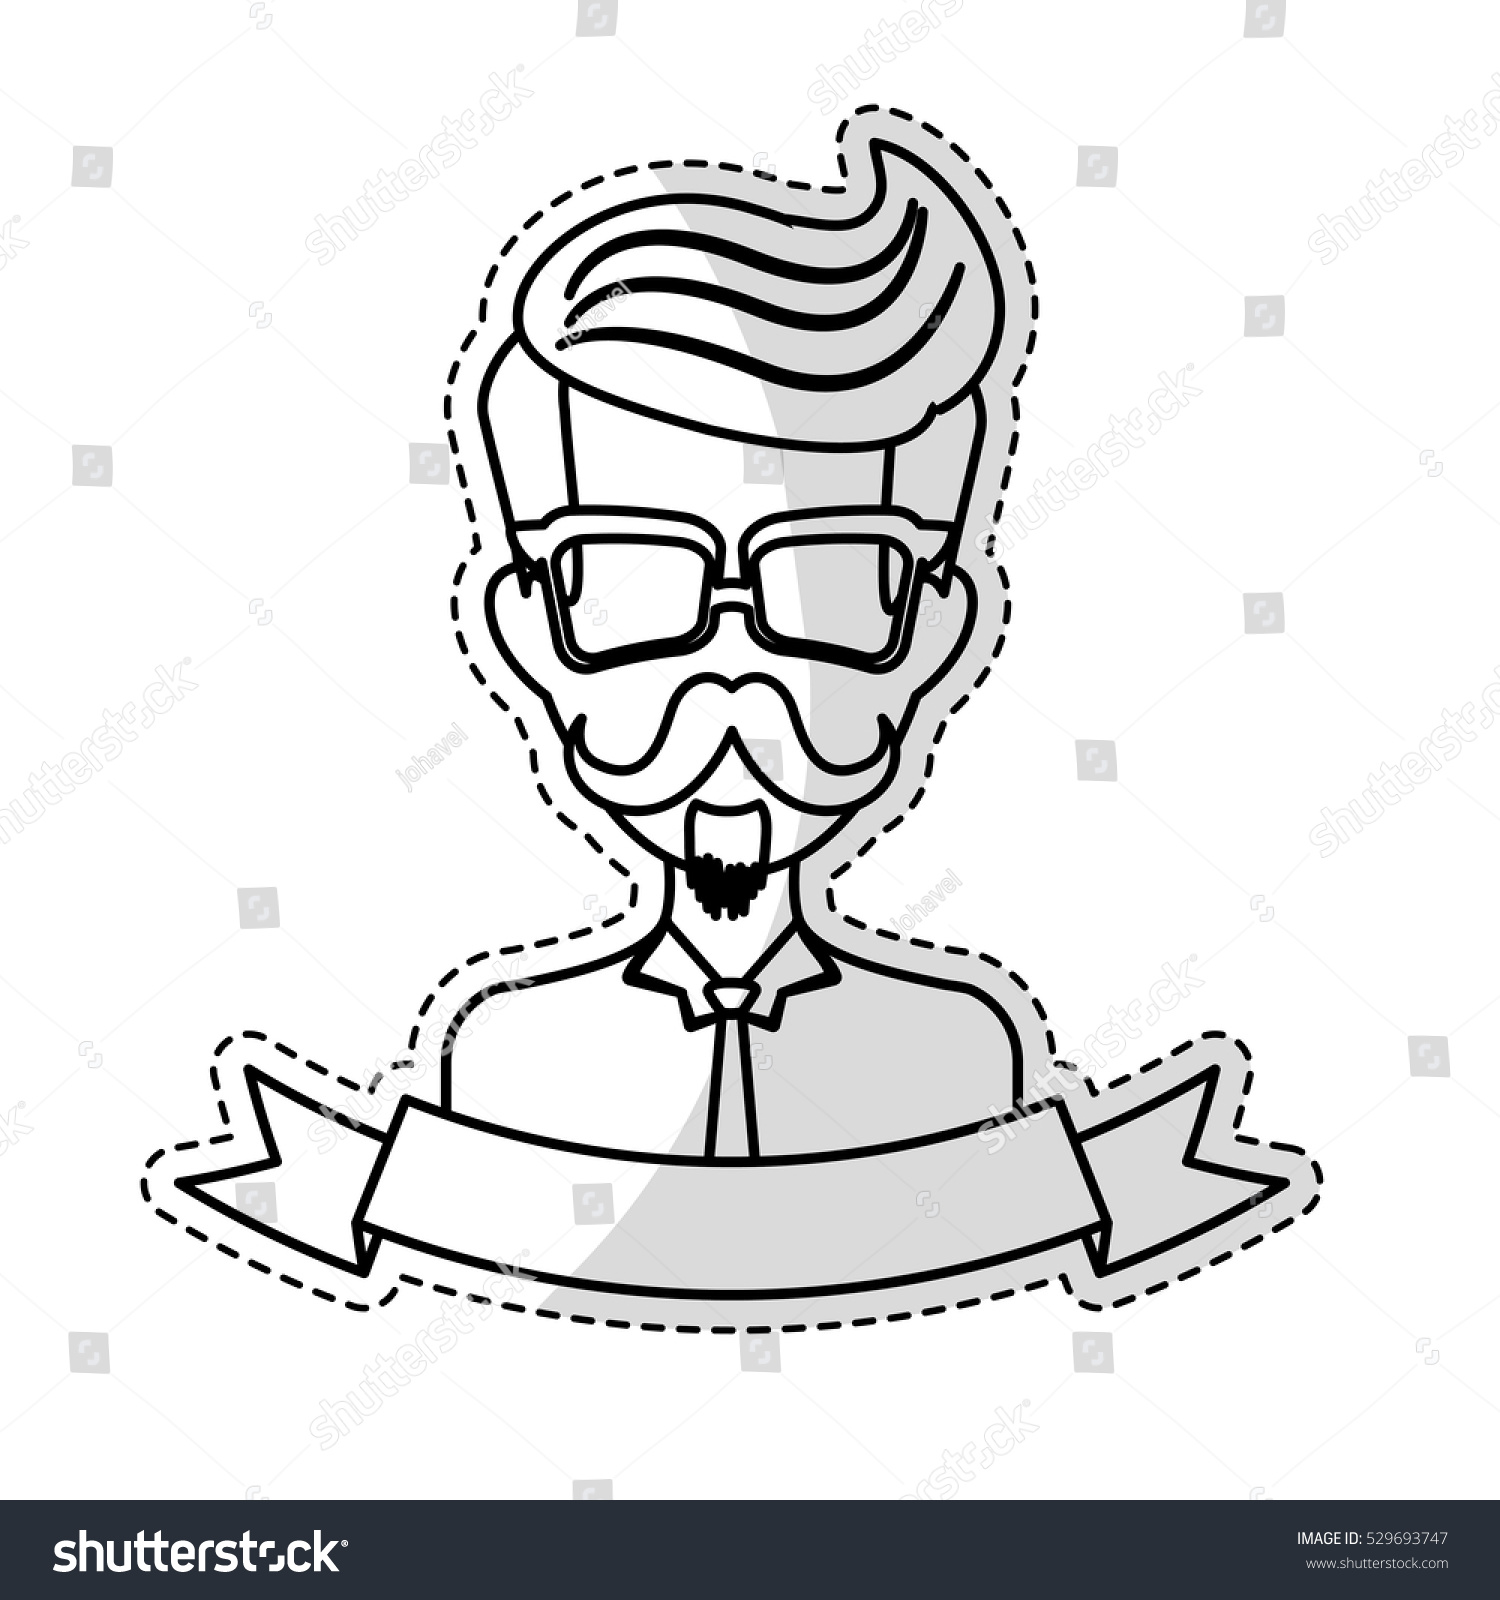 Sticker of man face with mustache and glasses and decorative ribbon over white background hispter